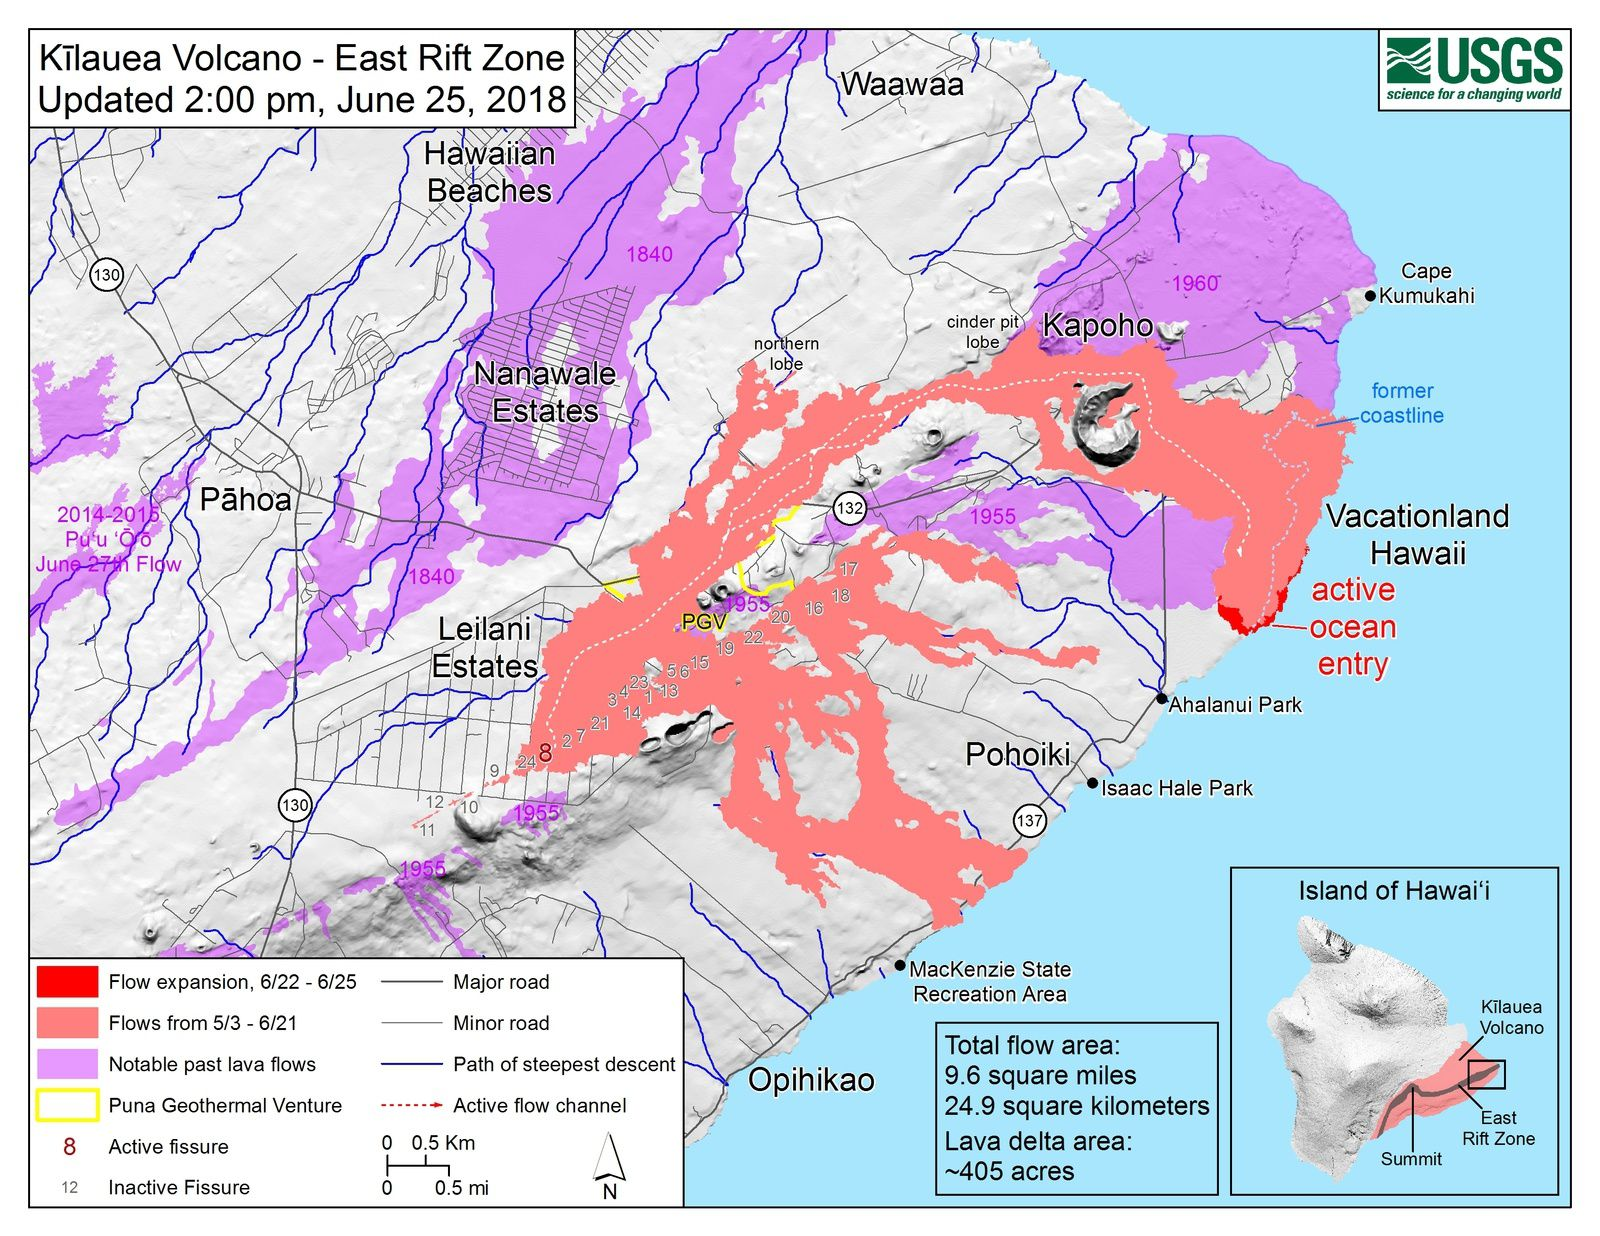 Kilauea East rift zone - map of the flows at 25.06.2018 / 2 pm - Doc HVO-USGS